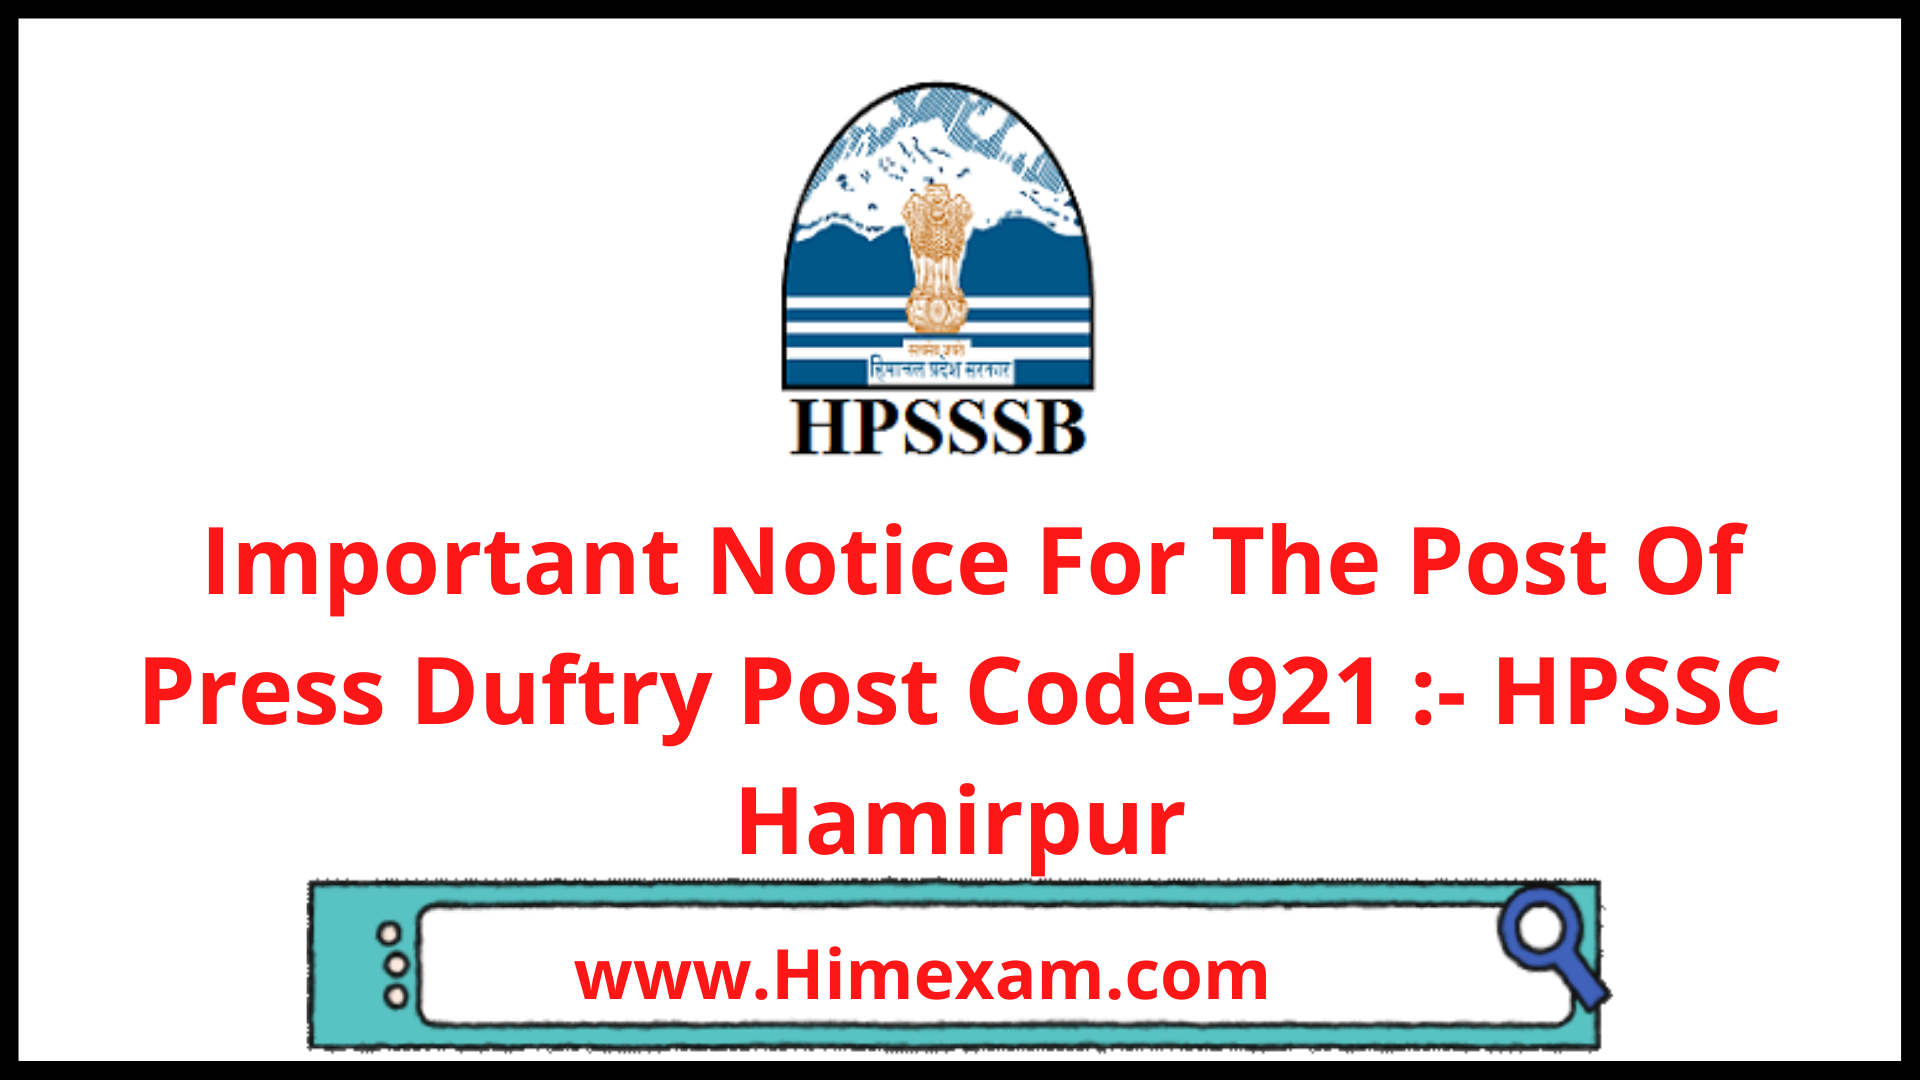 Important Notice For The Post Of Press Duftry Post Code-921 :- HPSSC Hamirpur